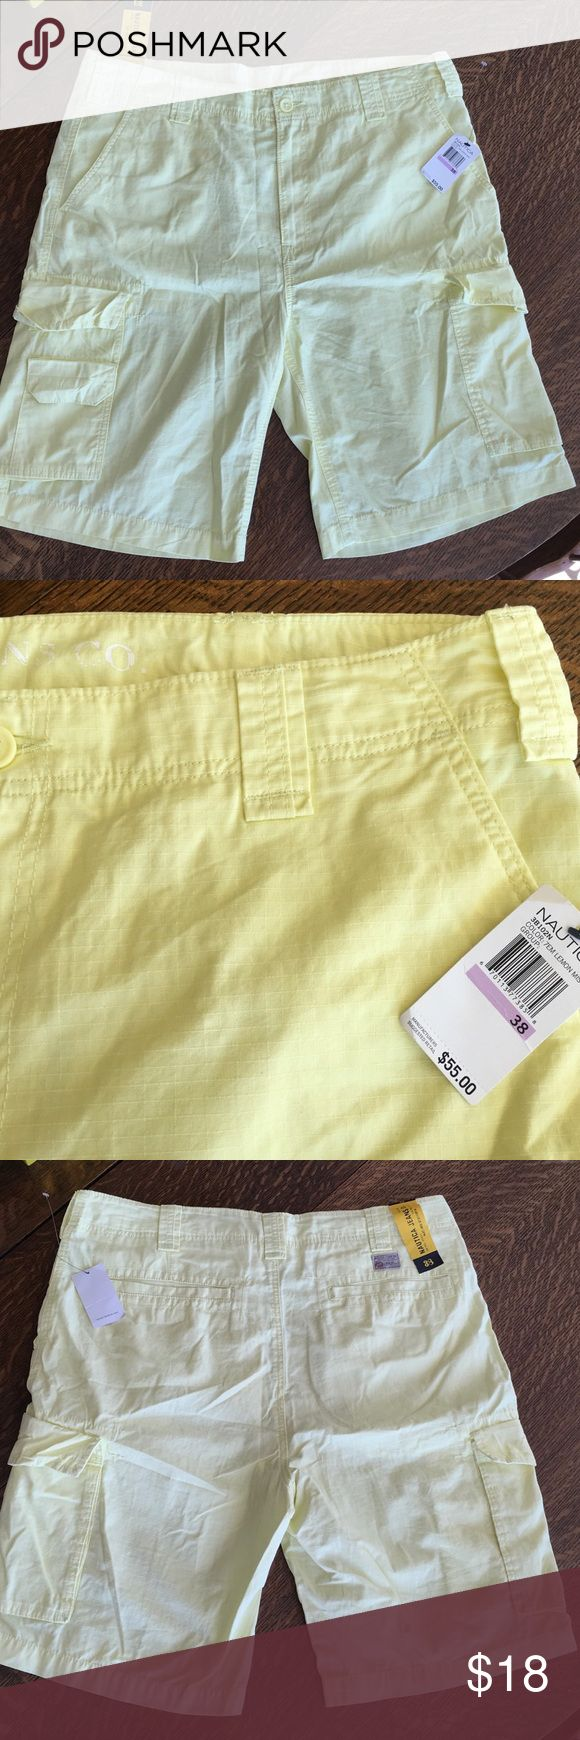 Men's Nautical Shorts NWT Brand new with tags.  The second picture shows accurate color. They are a pale yellow.   Non smoker home and I give bundle discounts! Shorts Cargo